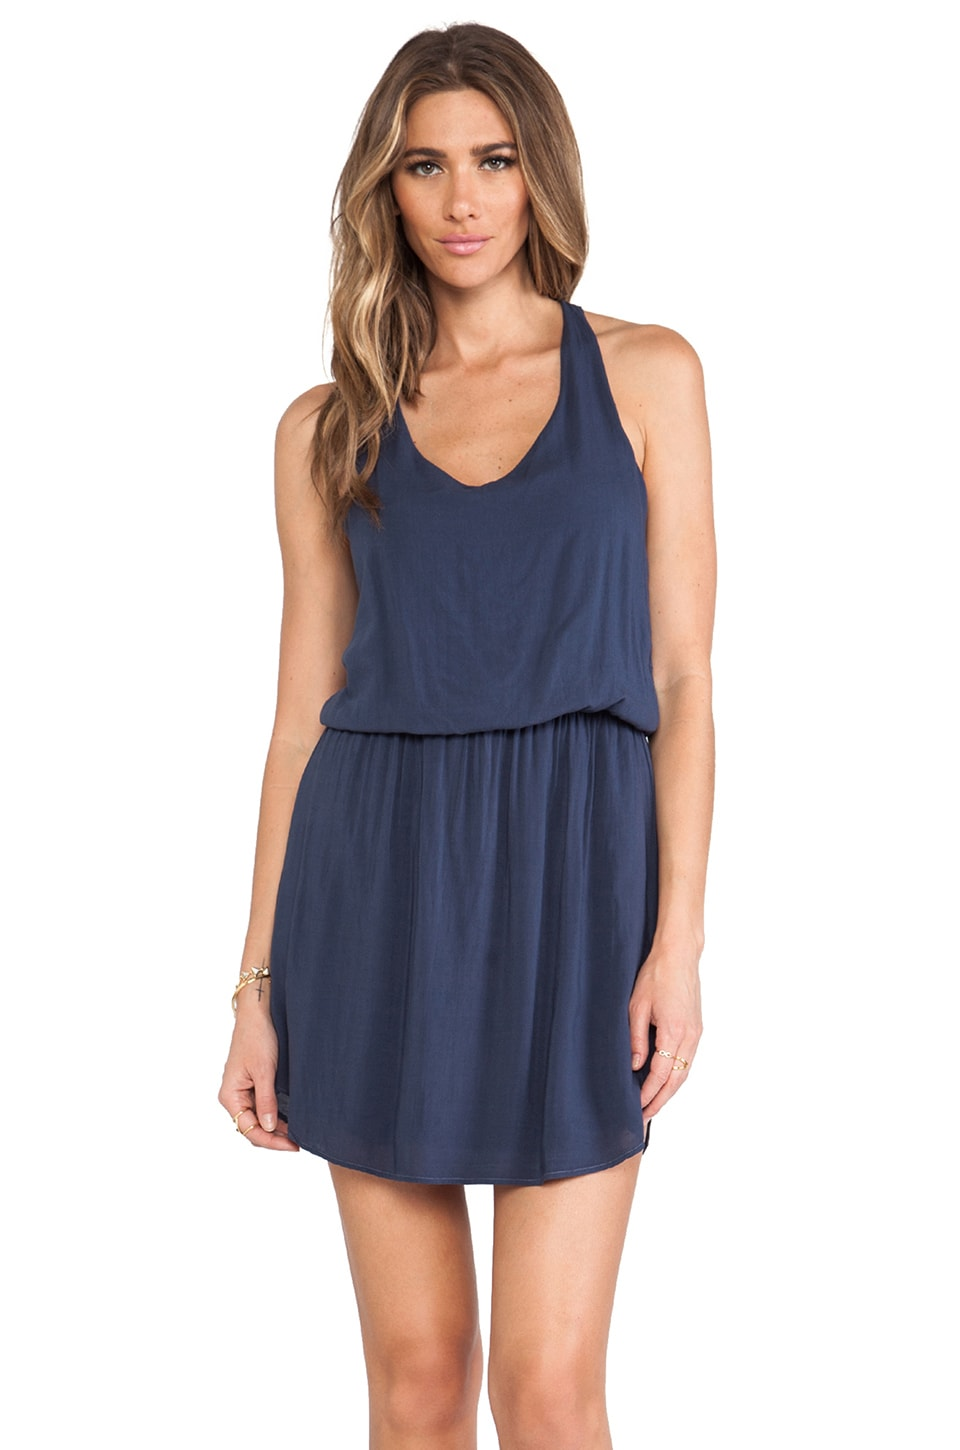 Splendid Tank Dress in Navy